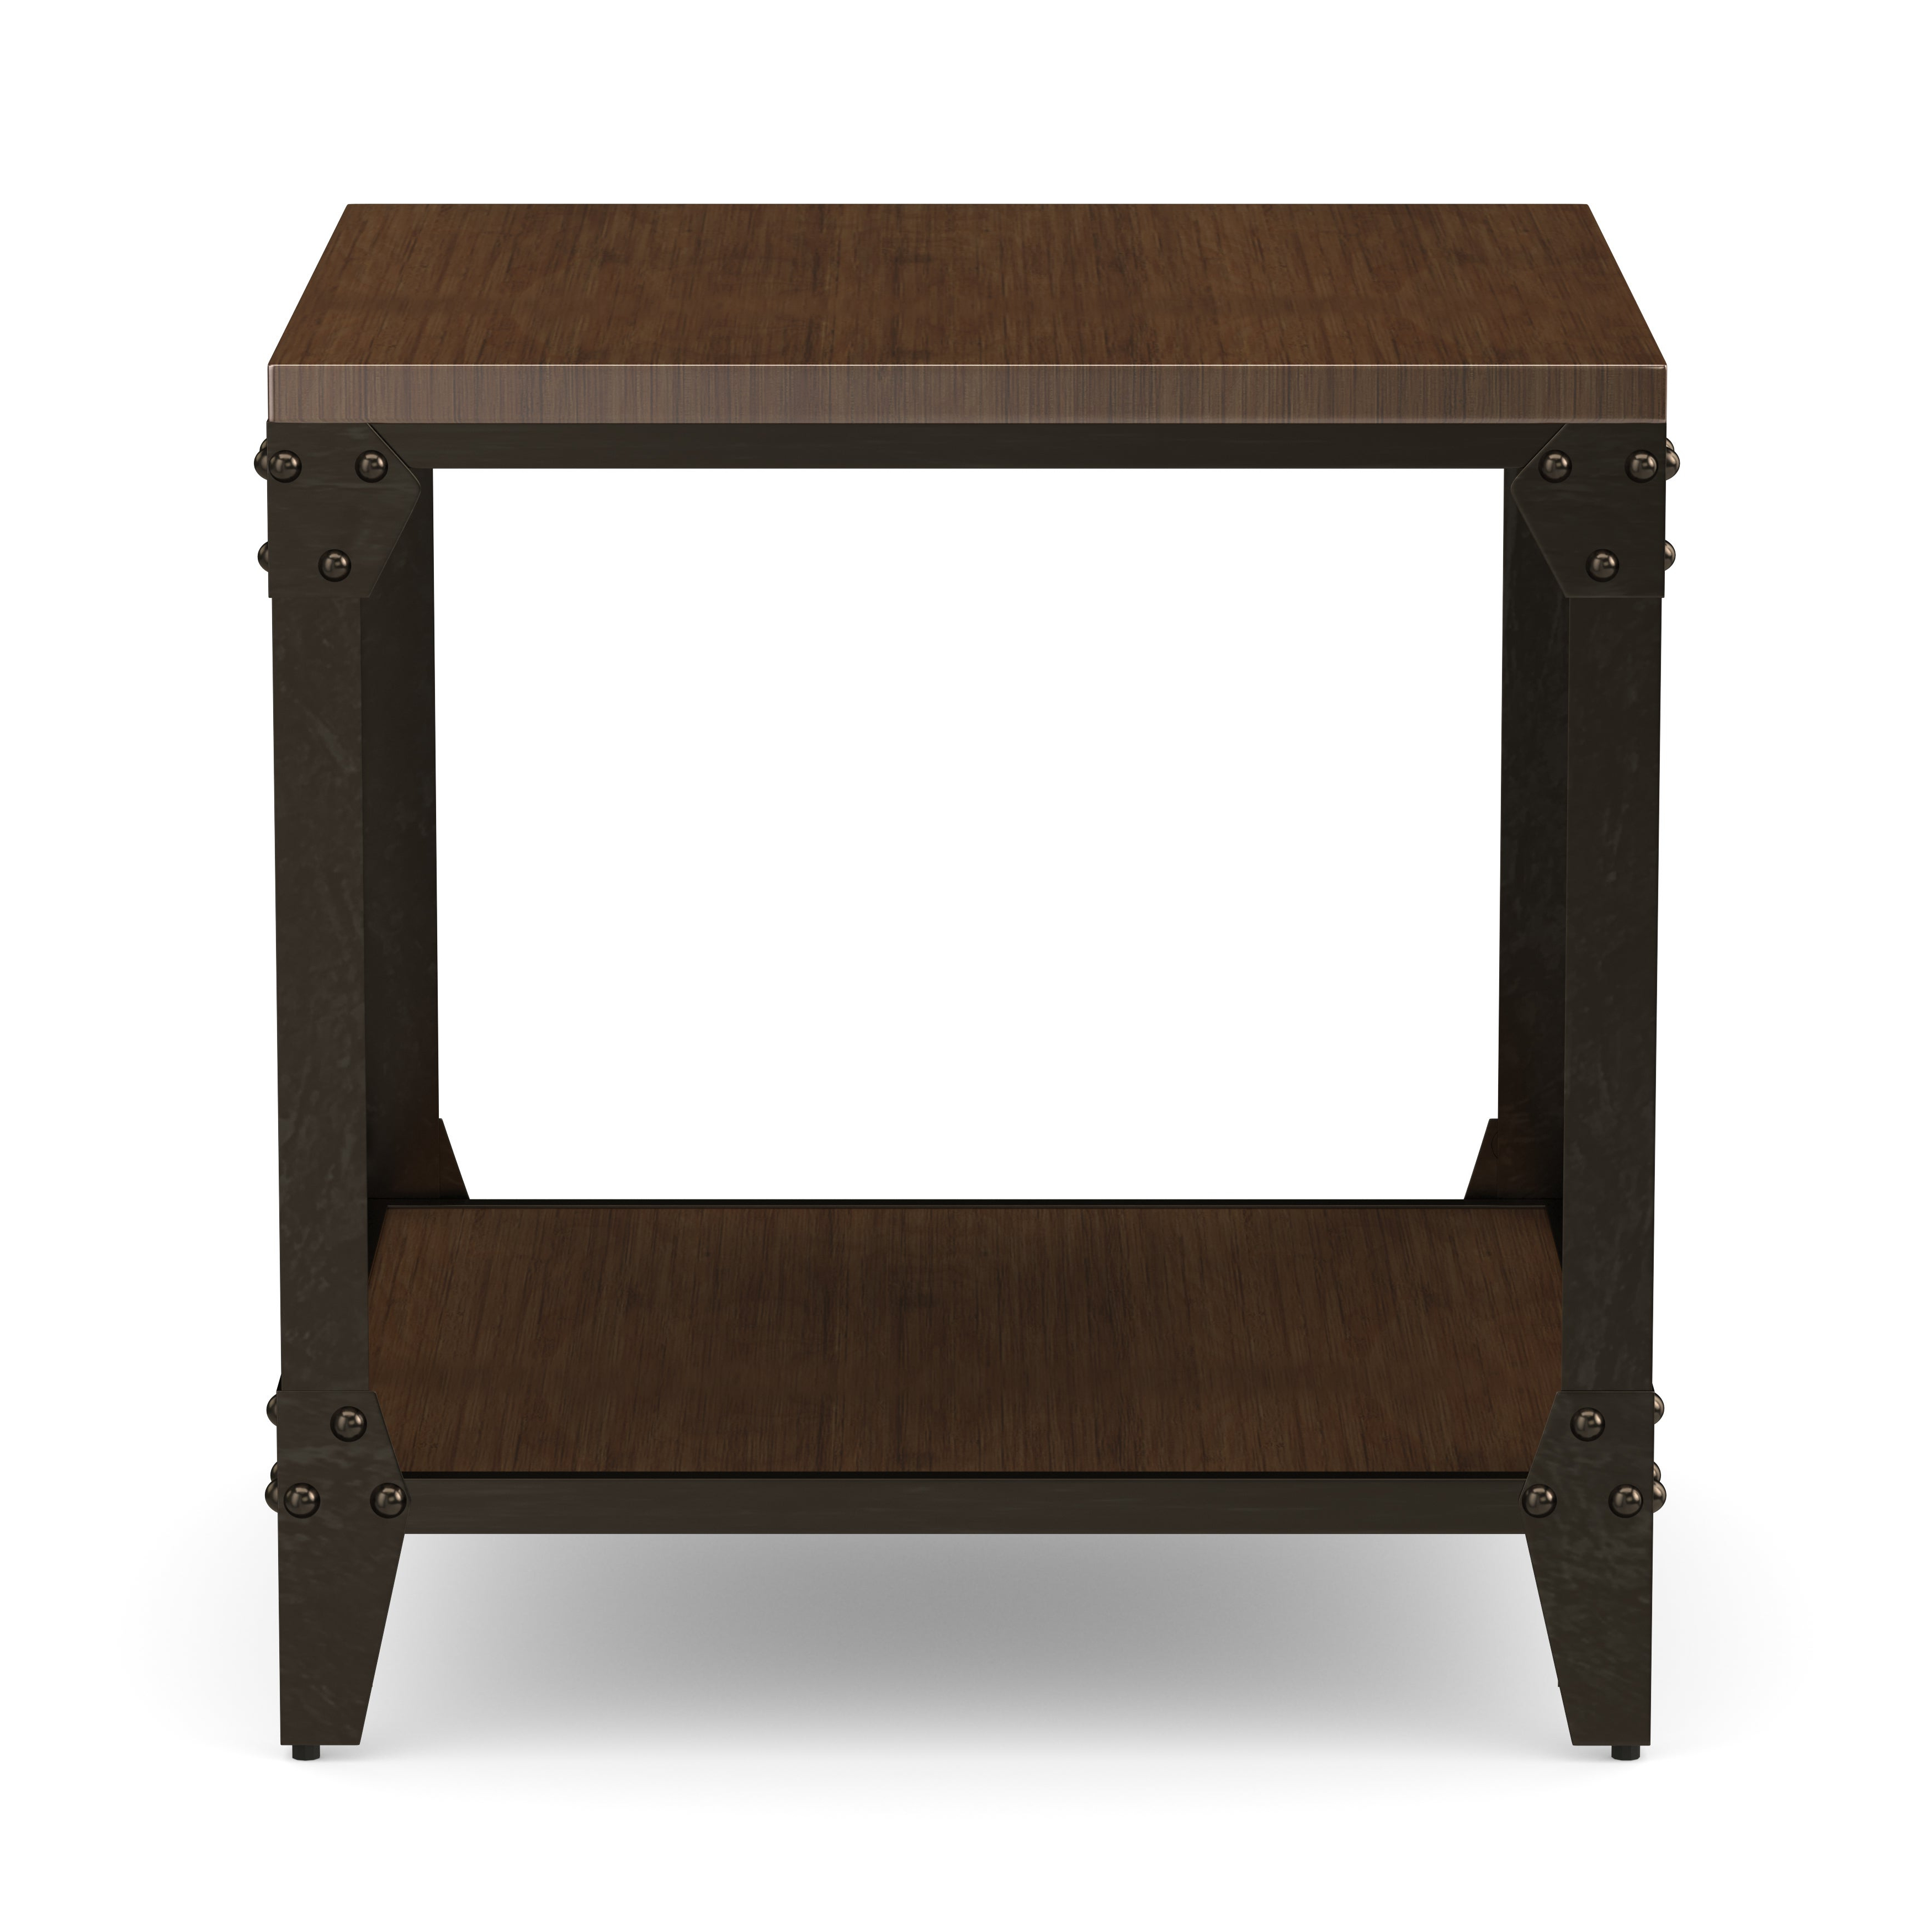 Current Carbon Loft Fischer Brown Solid Birch And Iron Rustic Coffee Tables Regarding Carbon Loft Fischer Solid Wood And Iron Rustic Square End Table (View 6 of 20)